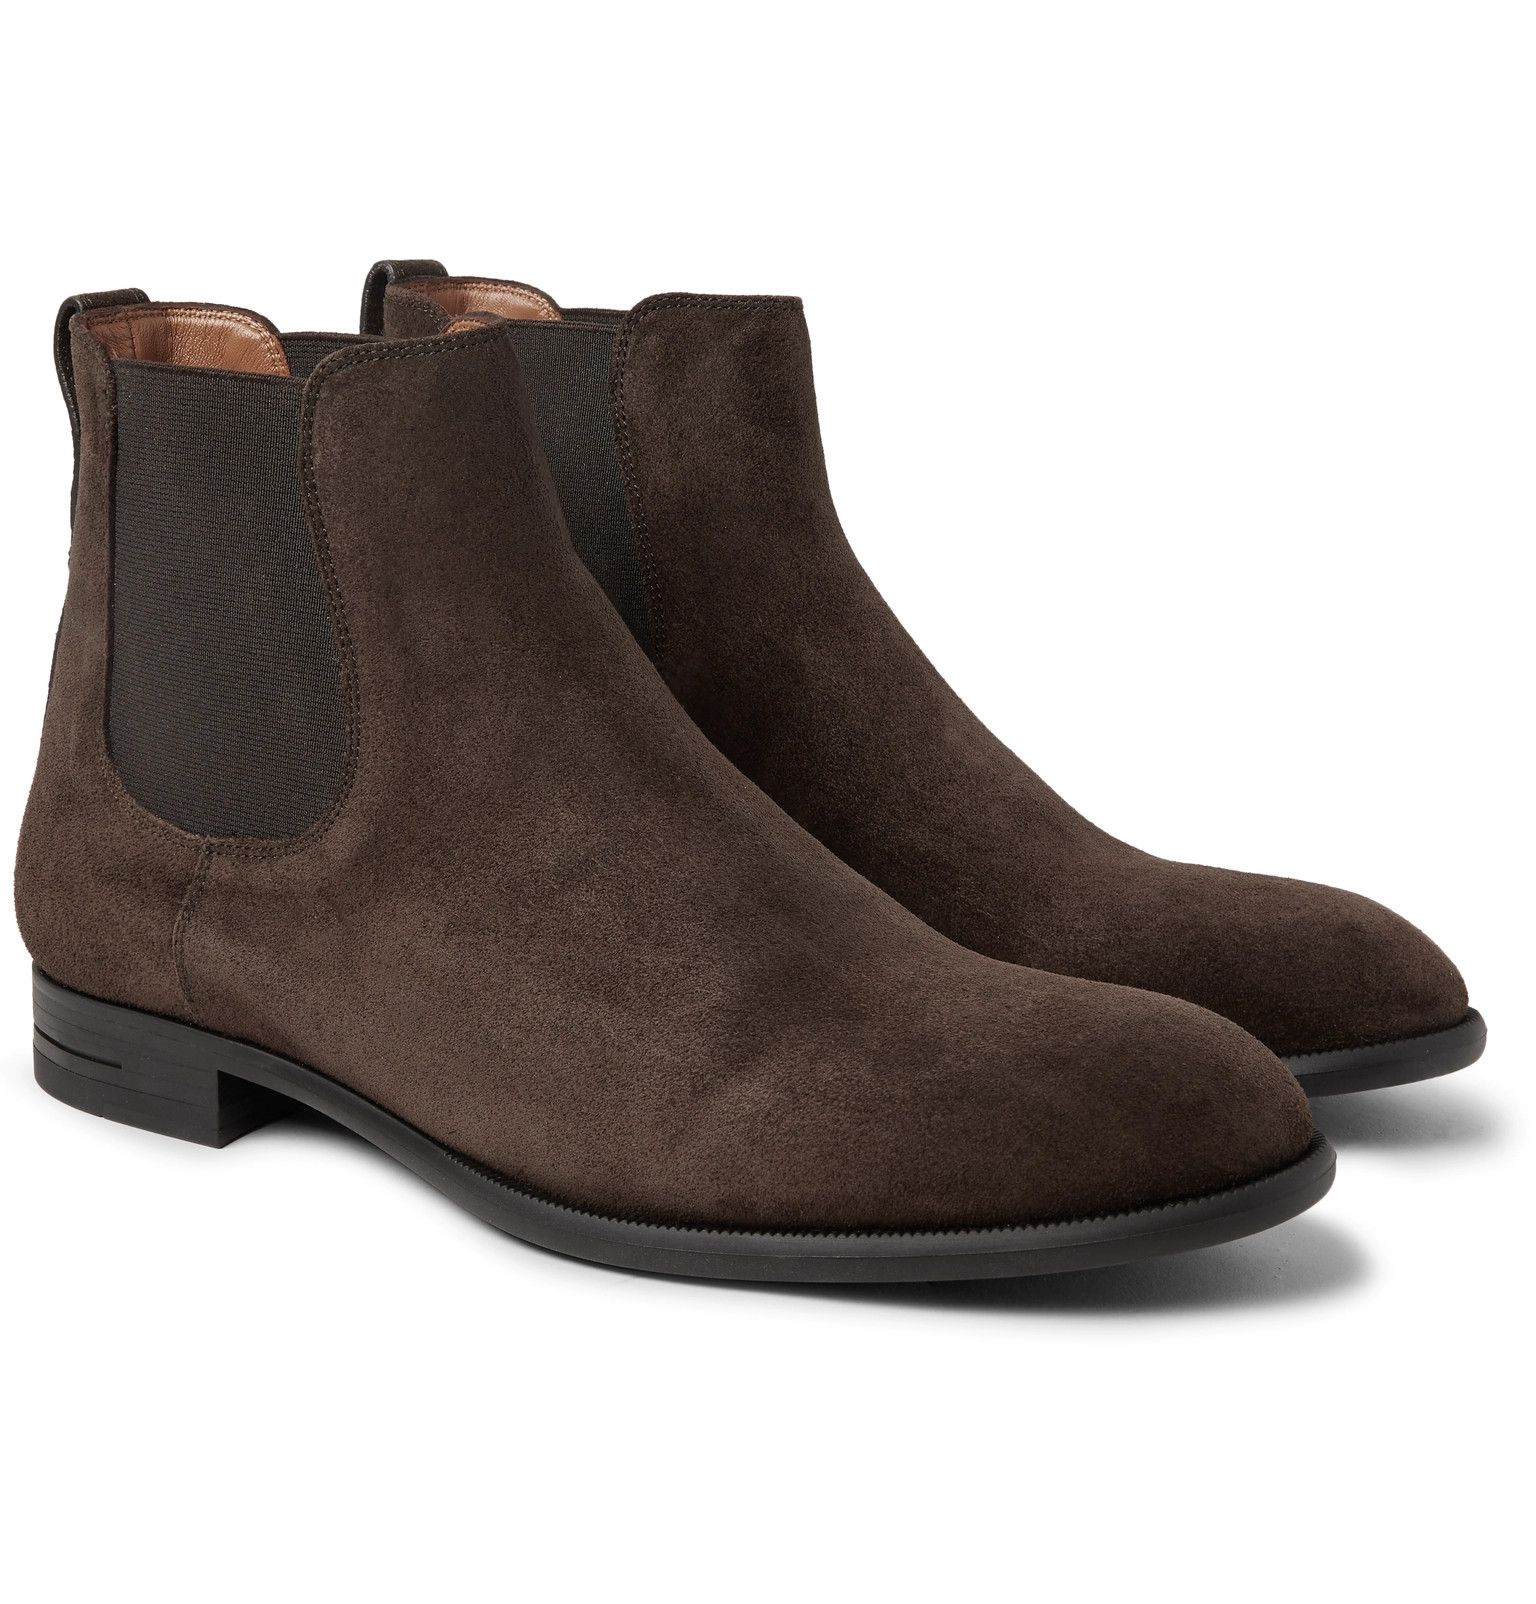 d51d74f9 Ermenegildo Zegna - Suede Chelsea Boots | Men's Shoes in 2019 | Mens ...